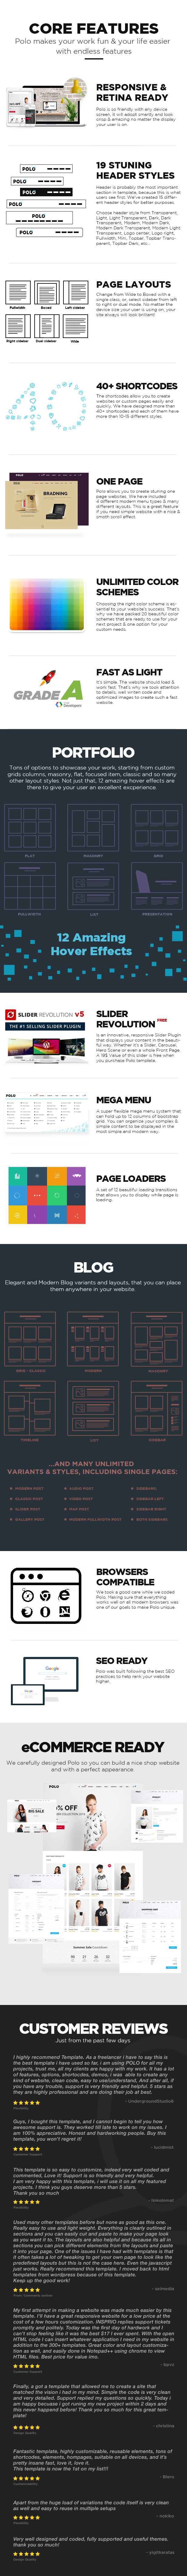 Polo - Responsive Multi-Purpose HTML5 Template - 9